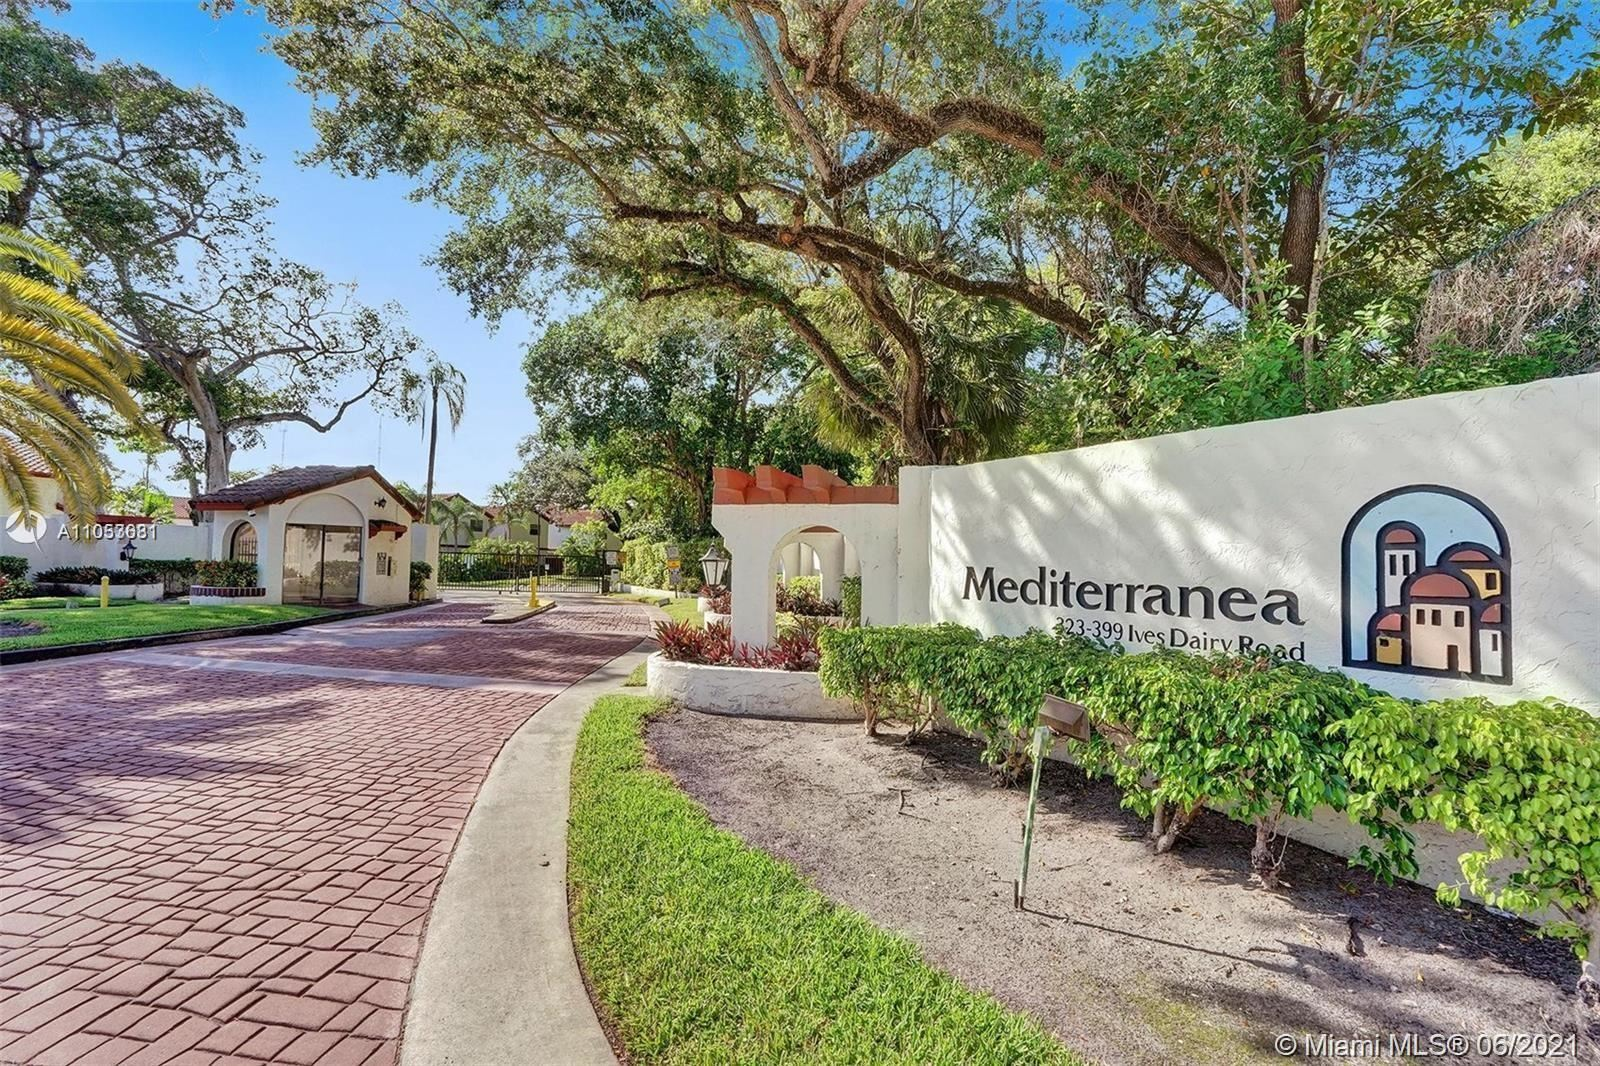 343 Ives Dairy Rd #343-04, Miami, FL 33179 - #: A11053681